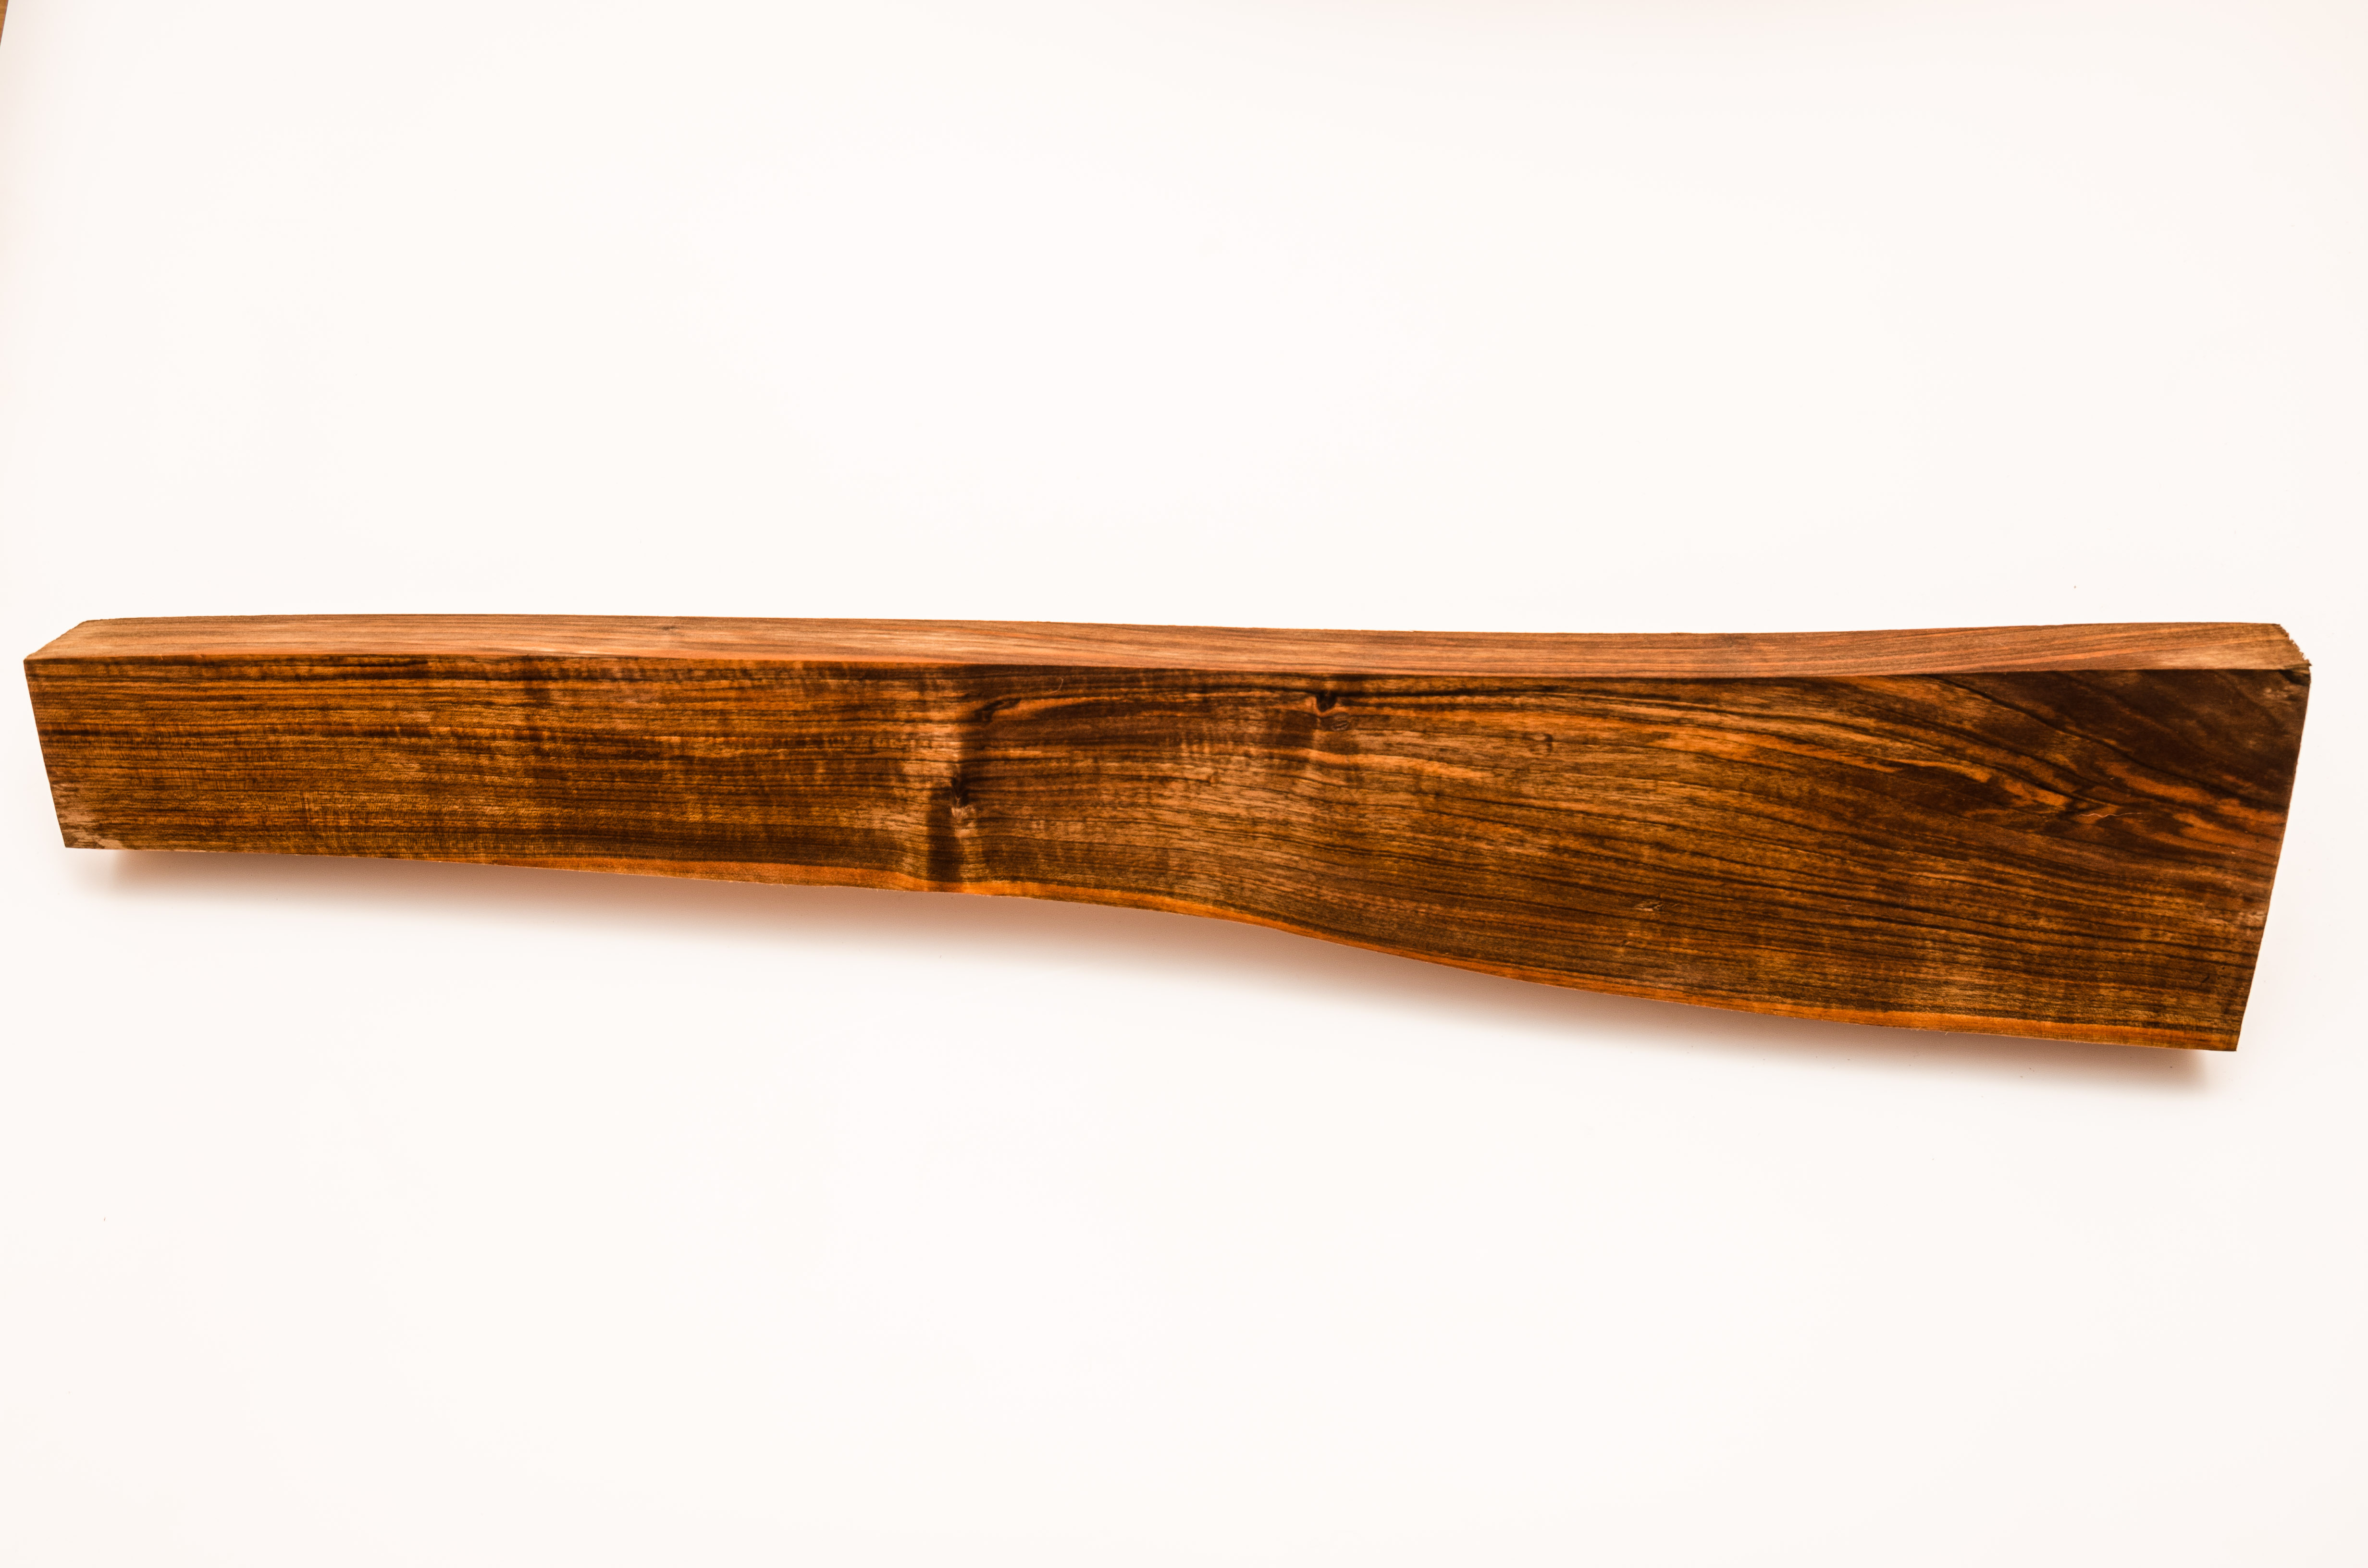 walnut_stock_blanks_for_guns_and_rifles-1620